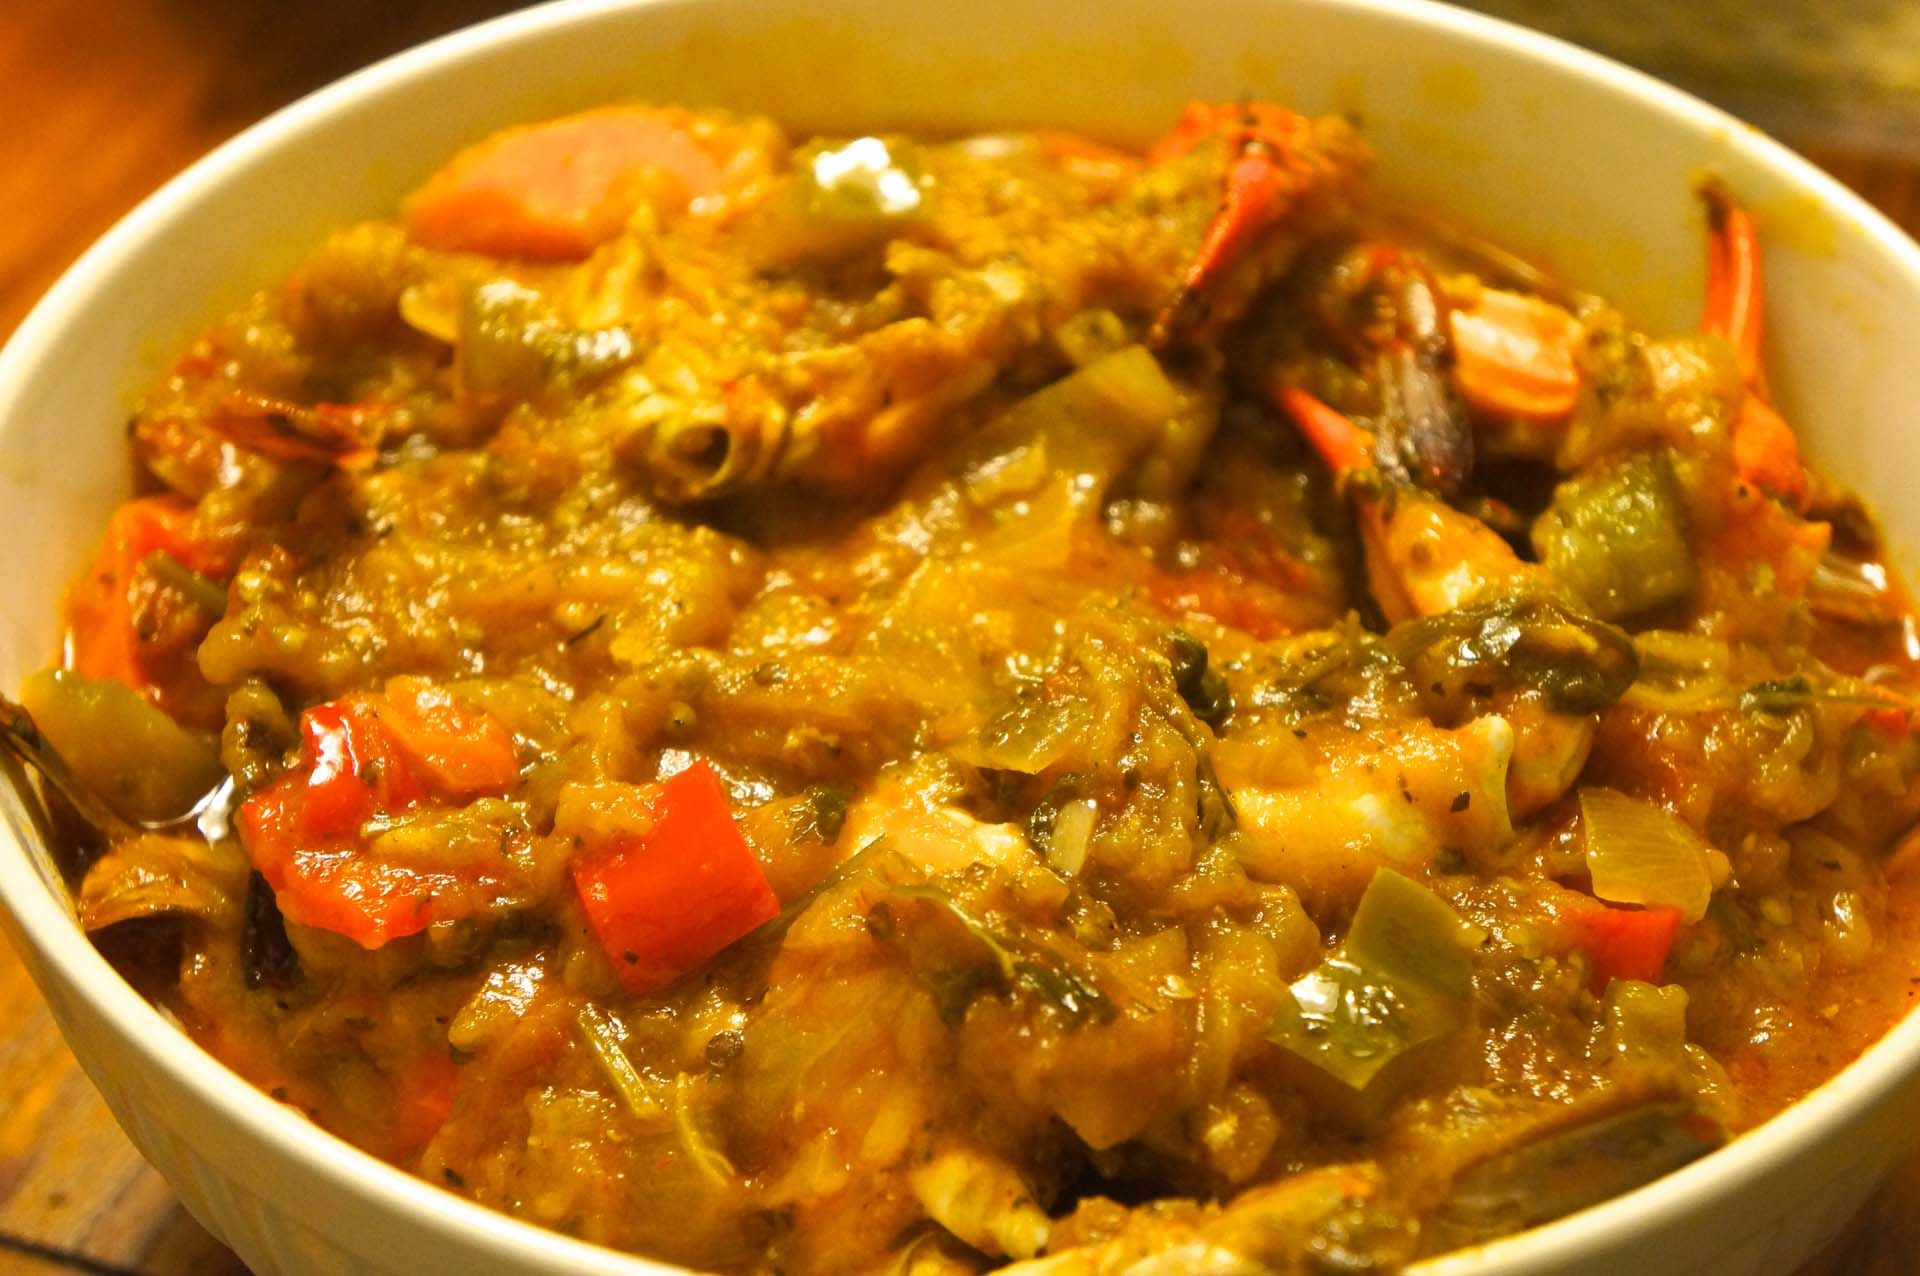 Afrikanische Küche Rezepte Haitian Recipe Eggplant With Blue Crabs The Word Legumes